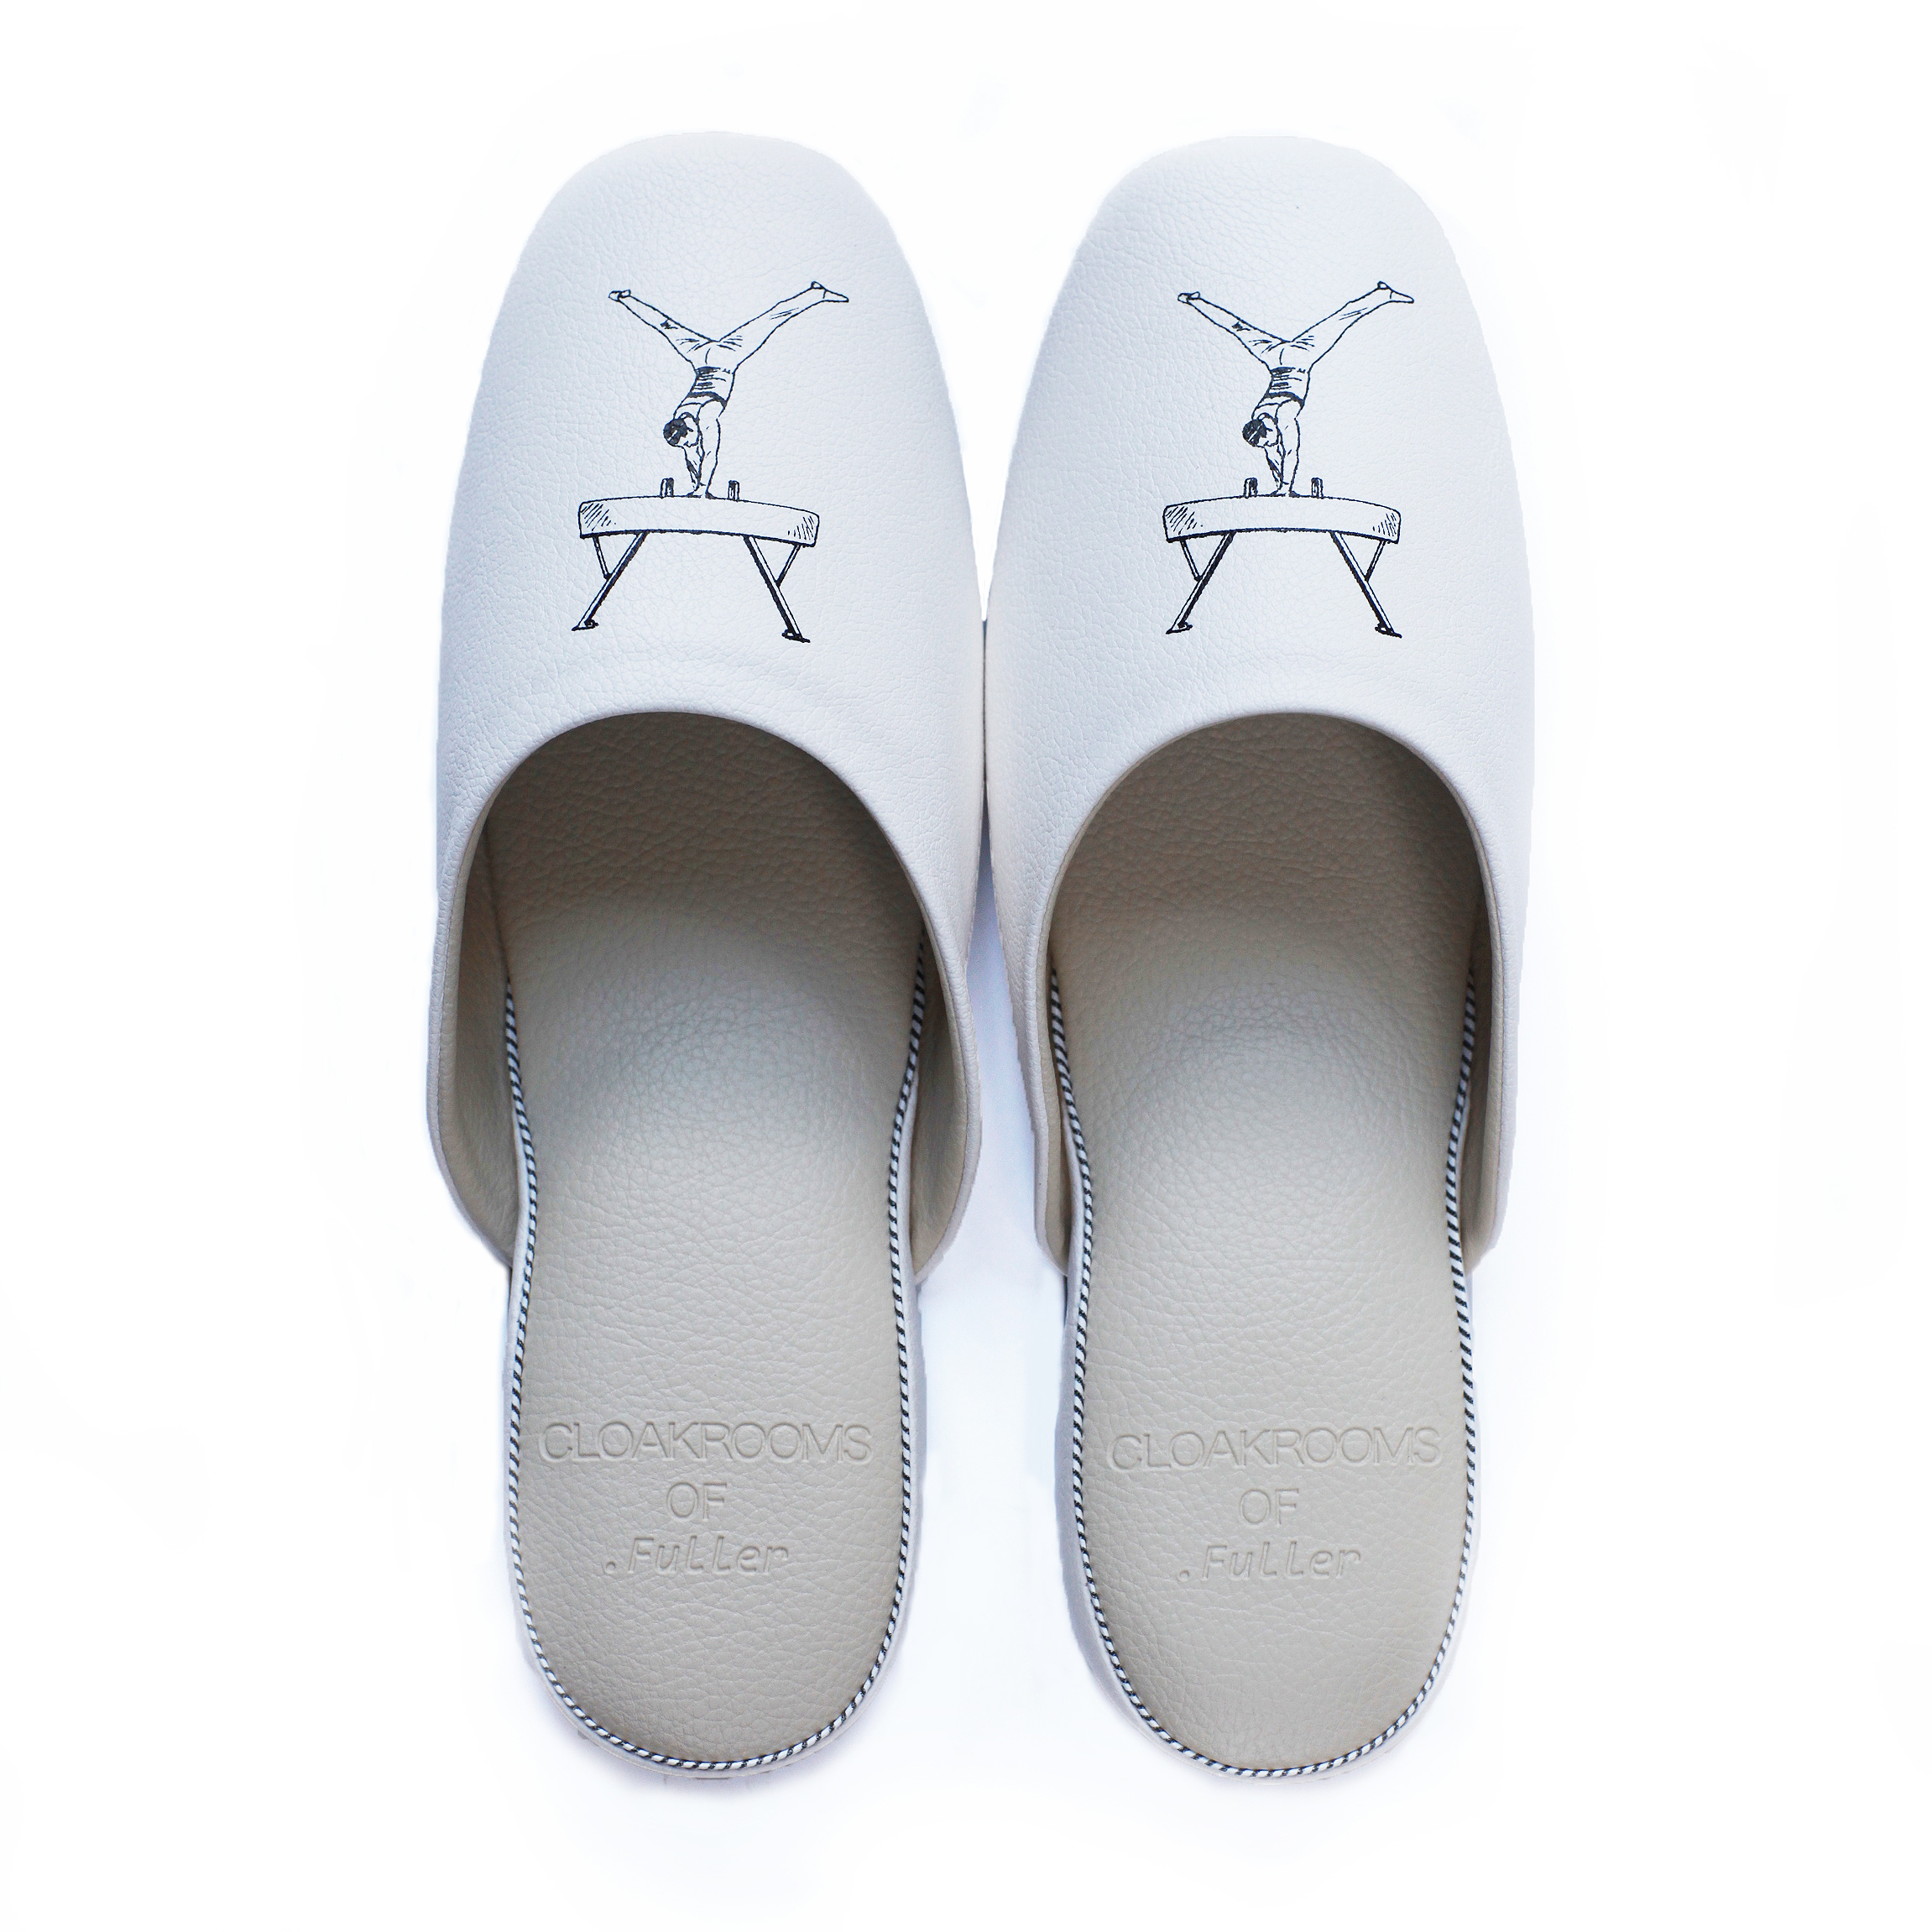 CLOAKROOMS of .Fuller PANTOUFLE クロークルームス スリッパ 【Gymnastics】 white/beige 竹田嘉文 デザイン